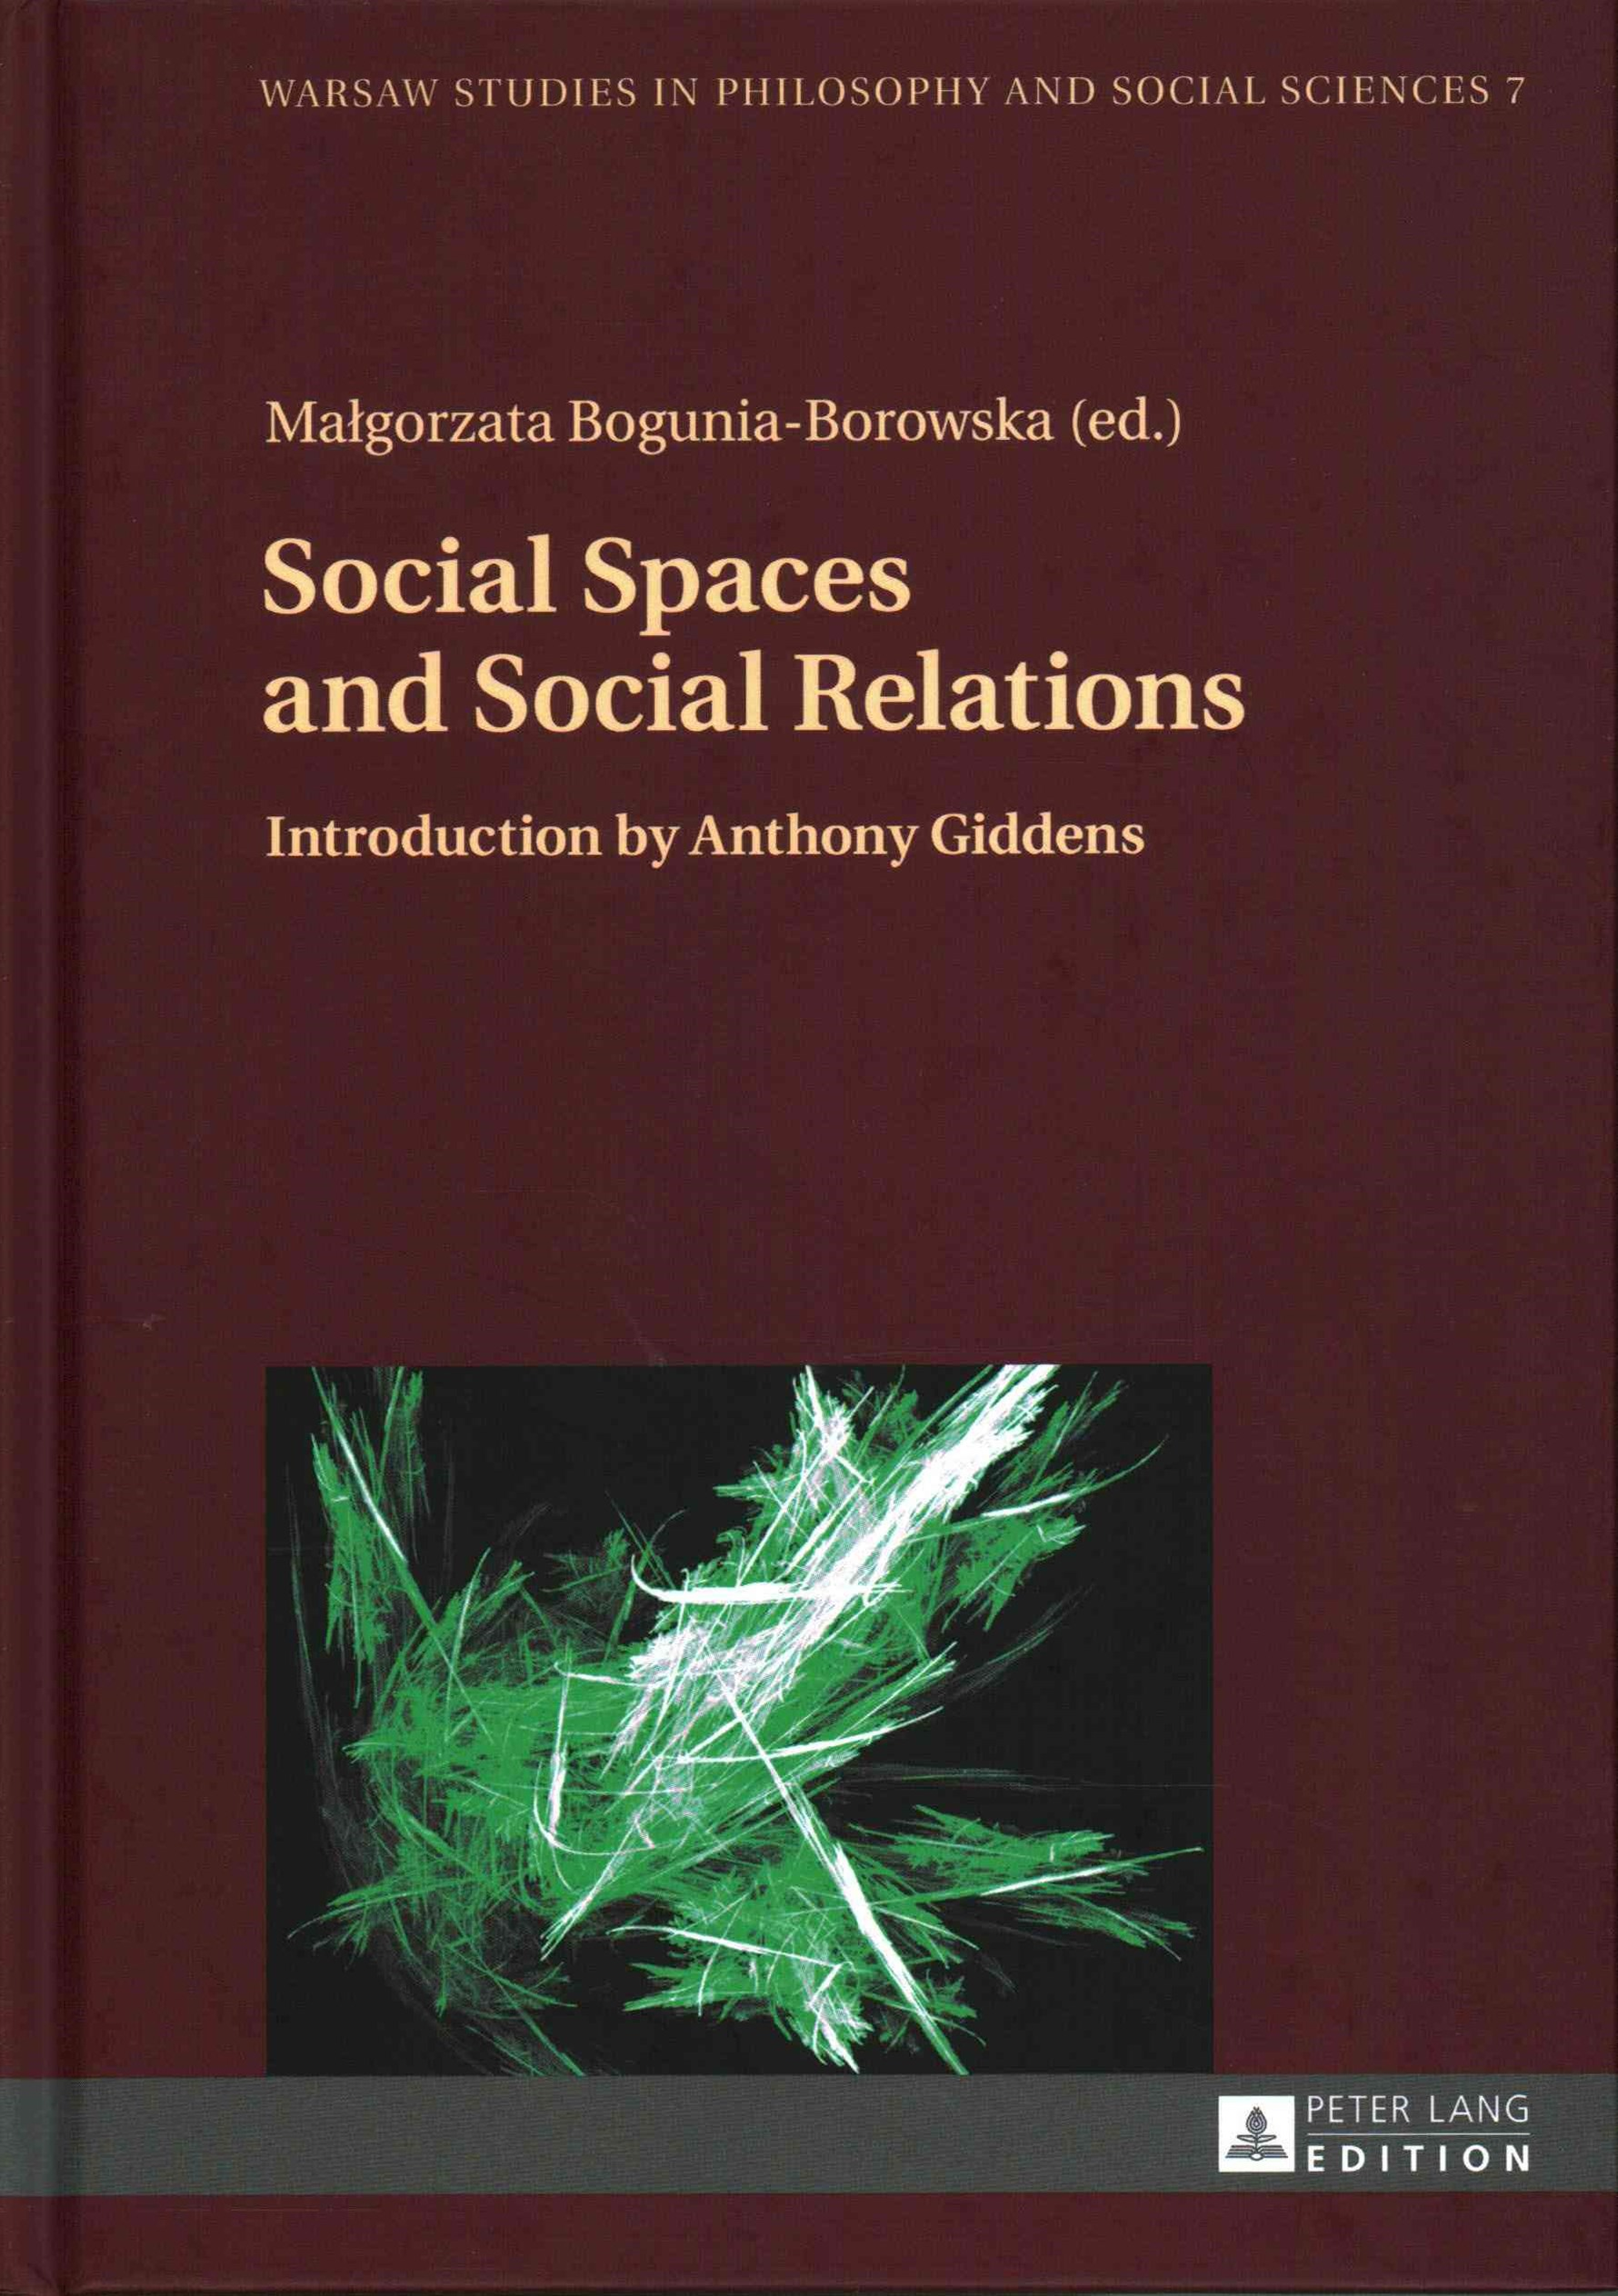 Social Spaces and Social Relations